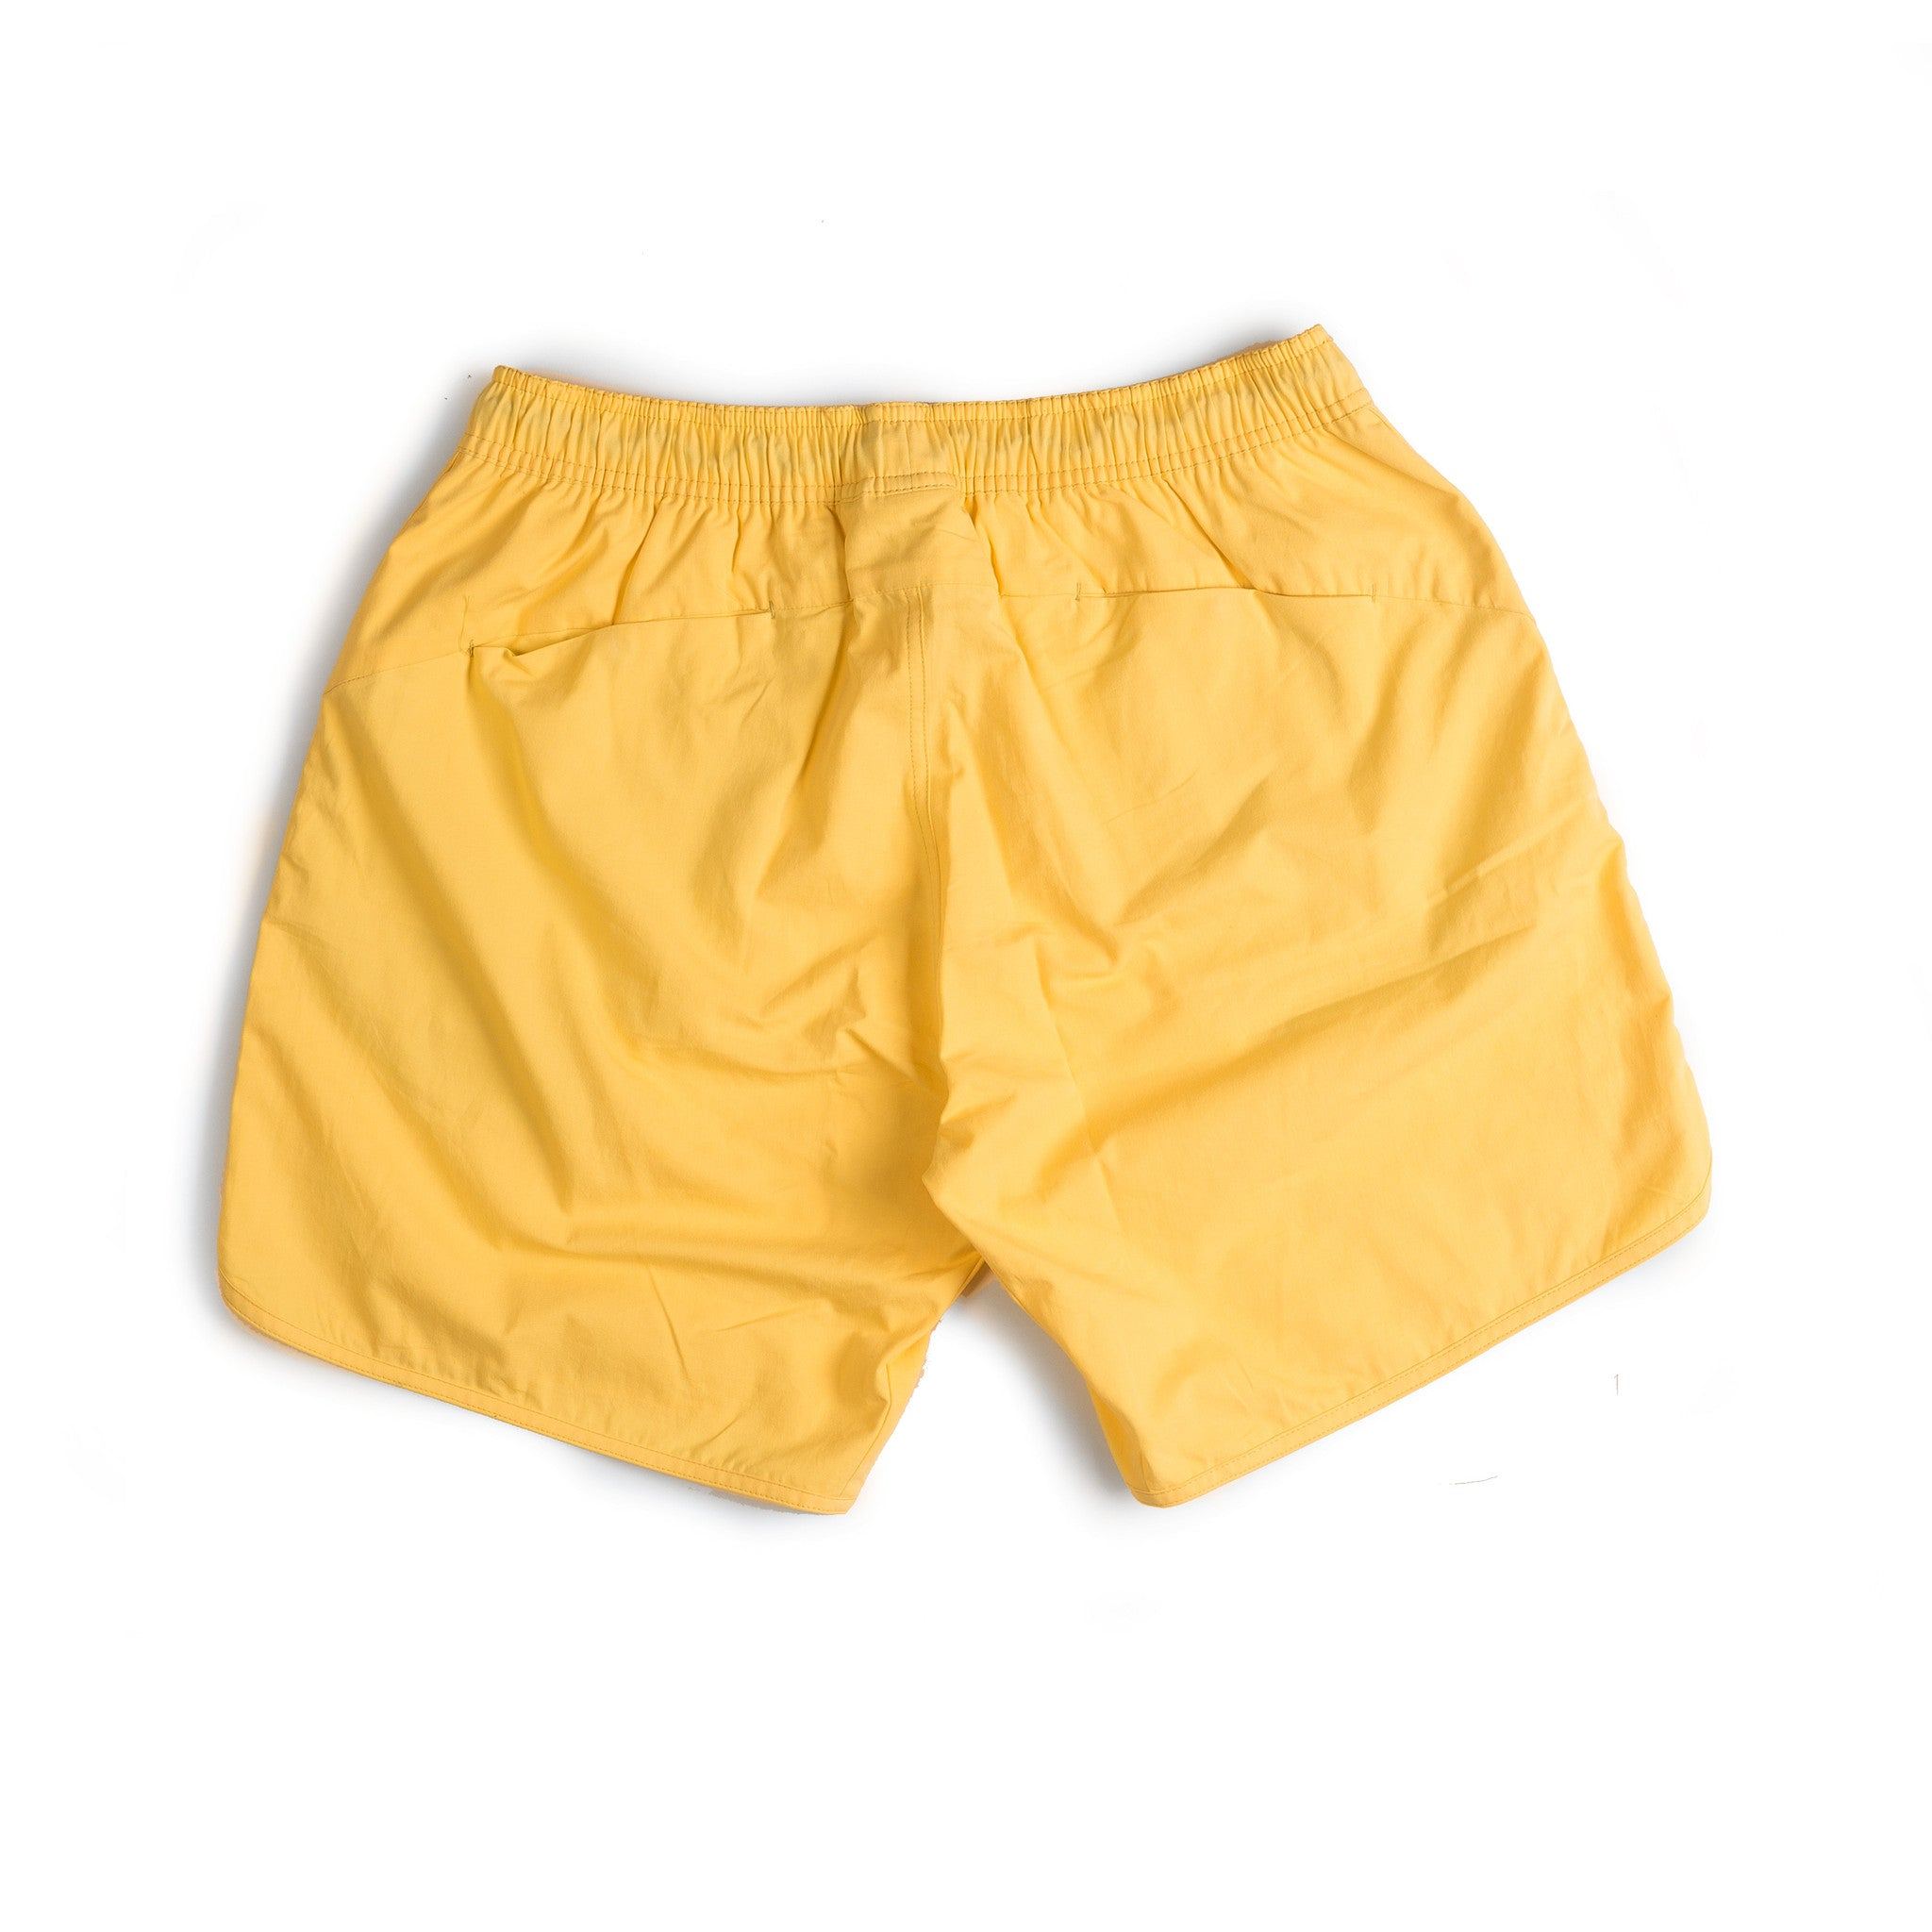 Notso - Polo Short - Butter